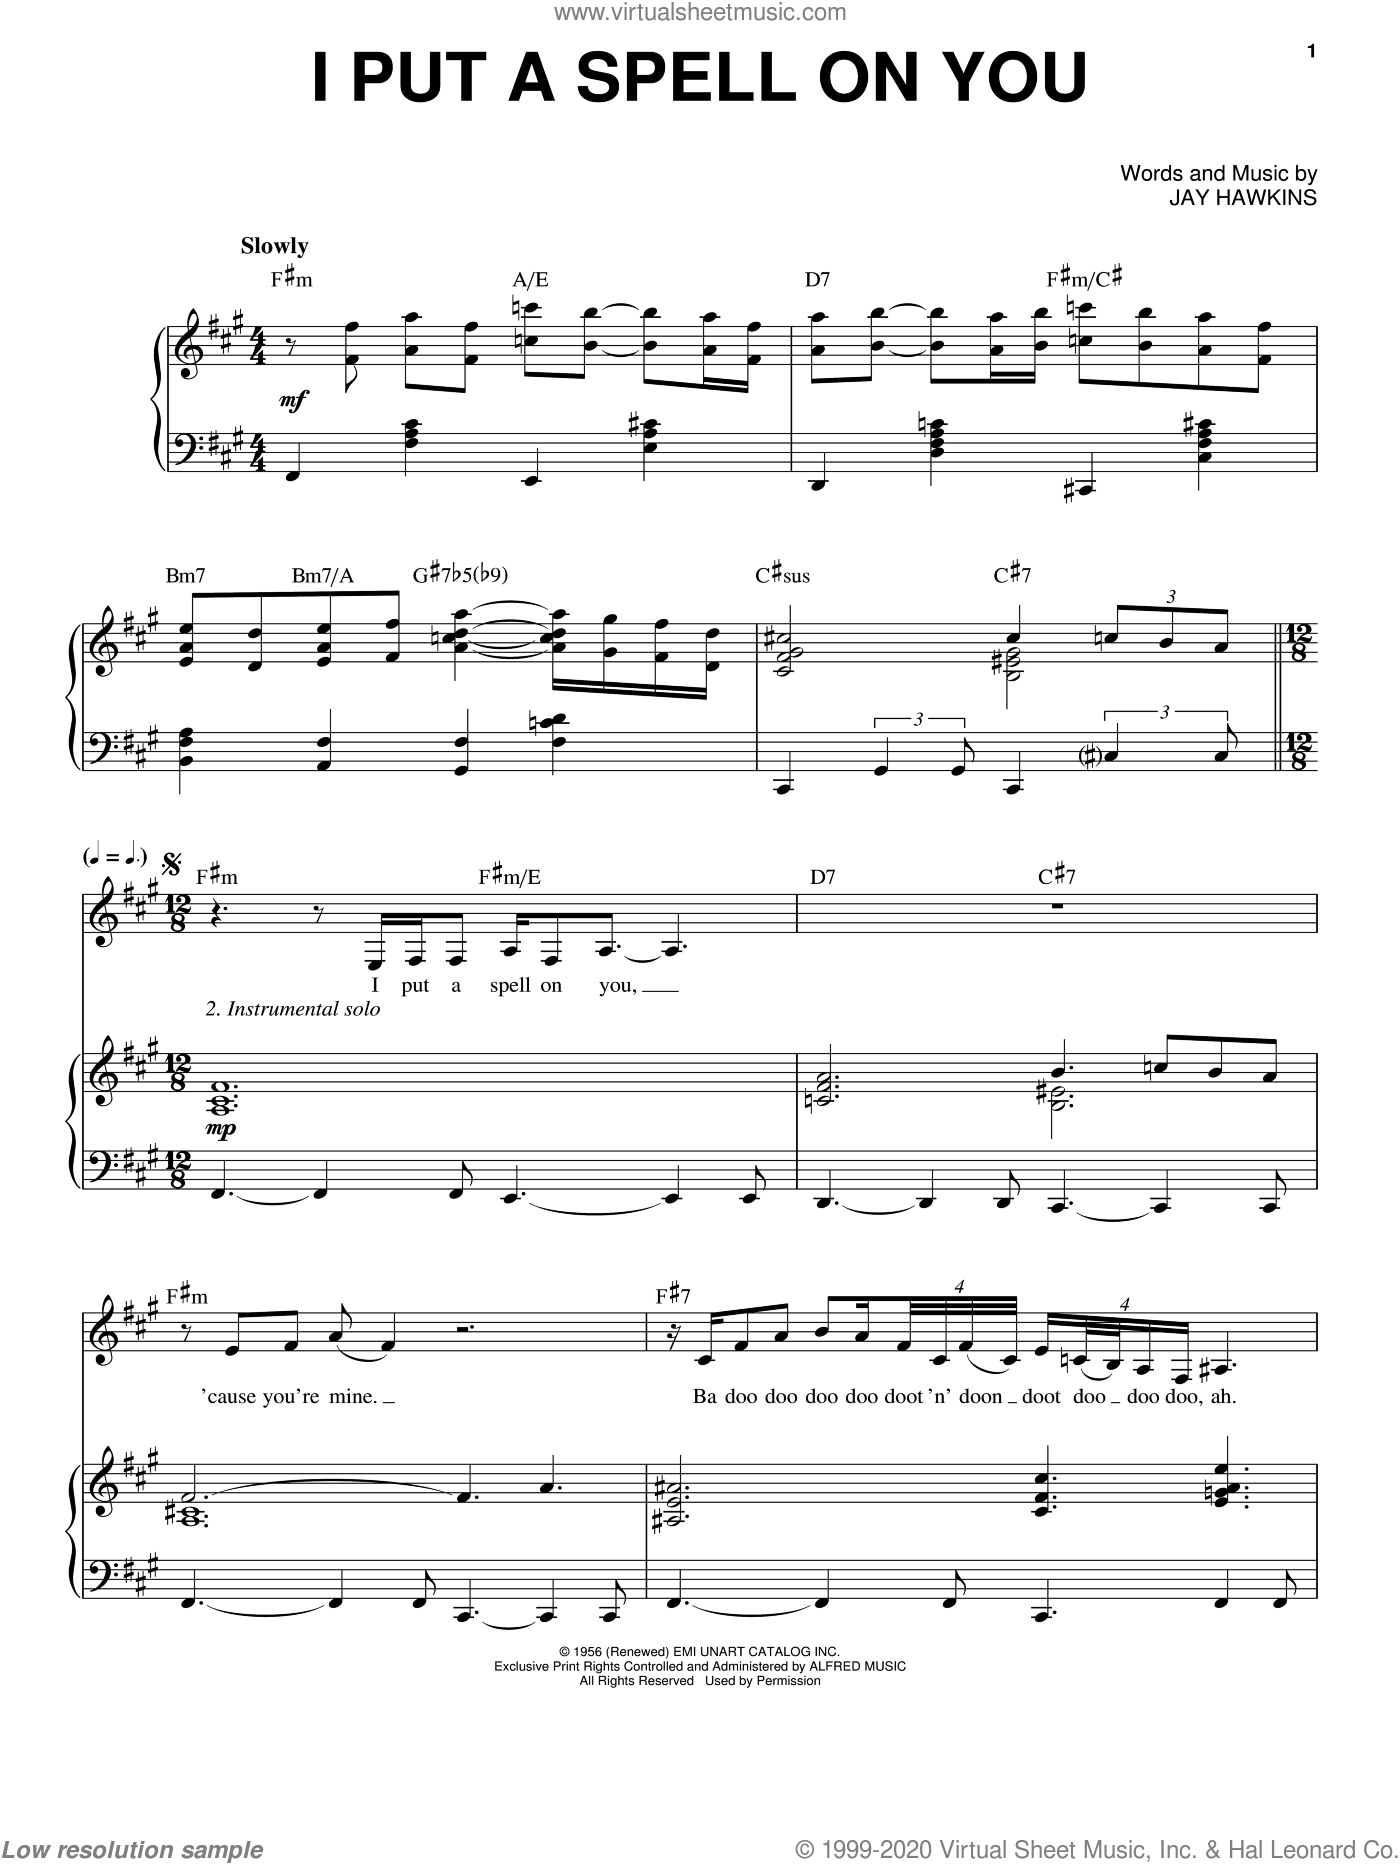 I Put A Spell On You sheet music for voice and piano by Nina Simone, Creedence Clearwater Revival and Jay Hawkins, intermediate. Score Image Preview.